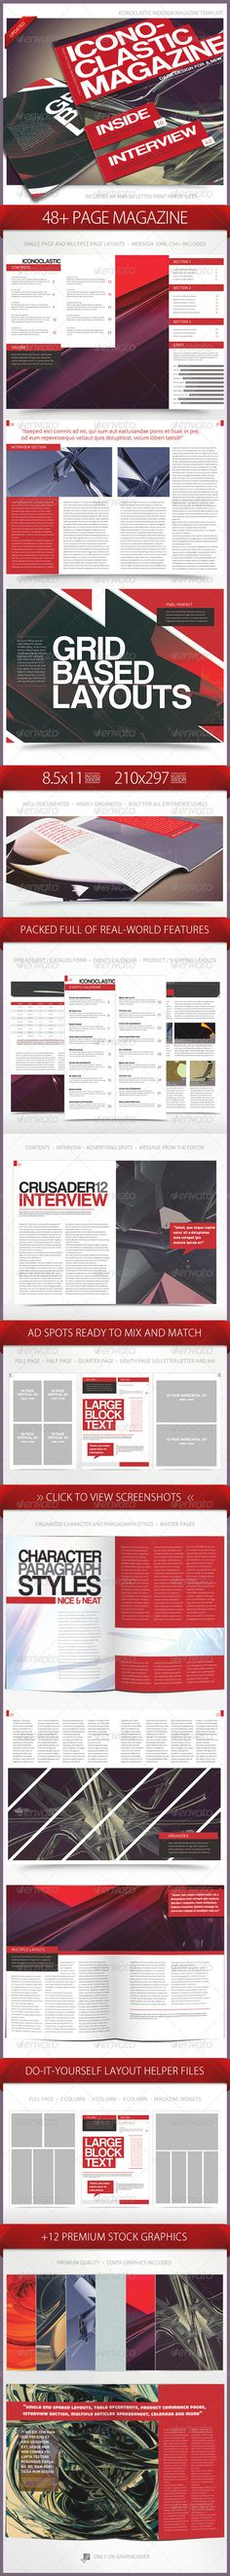 Iconoclastic 48+ Page Magazine Template #GraphicRiver Iconoclastic 48+ Page Magazine Template This 48 page magazine template is perfect for a number of uses such as minimal, art gallery, photography, design, tech, etc. Tons of real-world features are packed as well as both A4 and US Letter versions. Included in the Template: 48 Page Template Table of Contents Design Cover Design Clean Character and Paragraph Styles Auto Page Numbering Master Page Styles A4 and US Letter Versions Grid-Based…